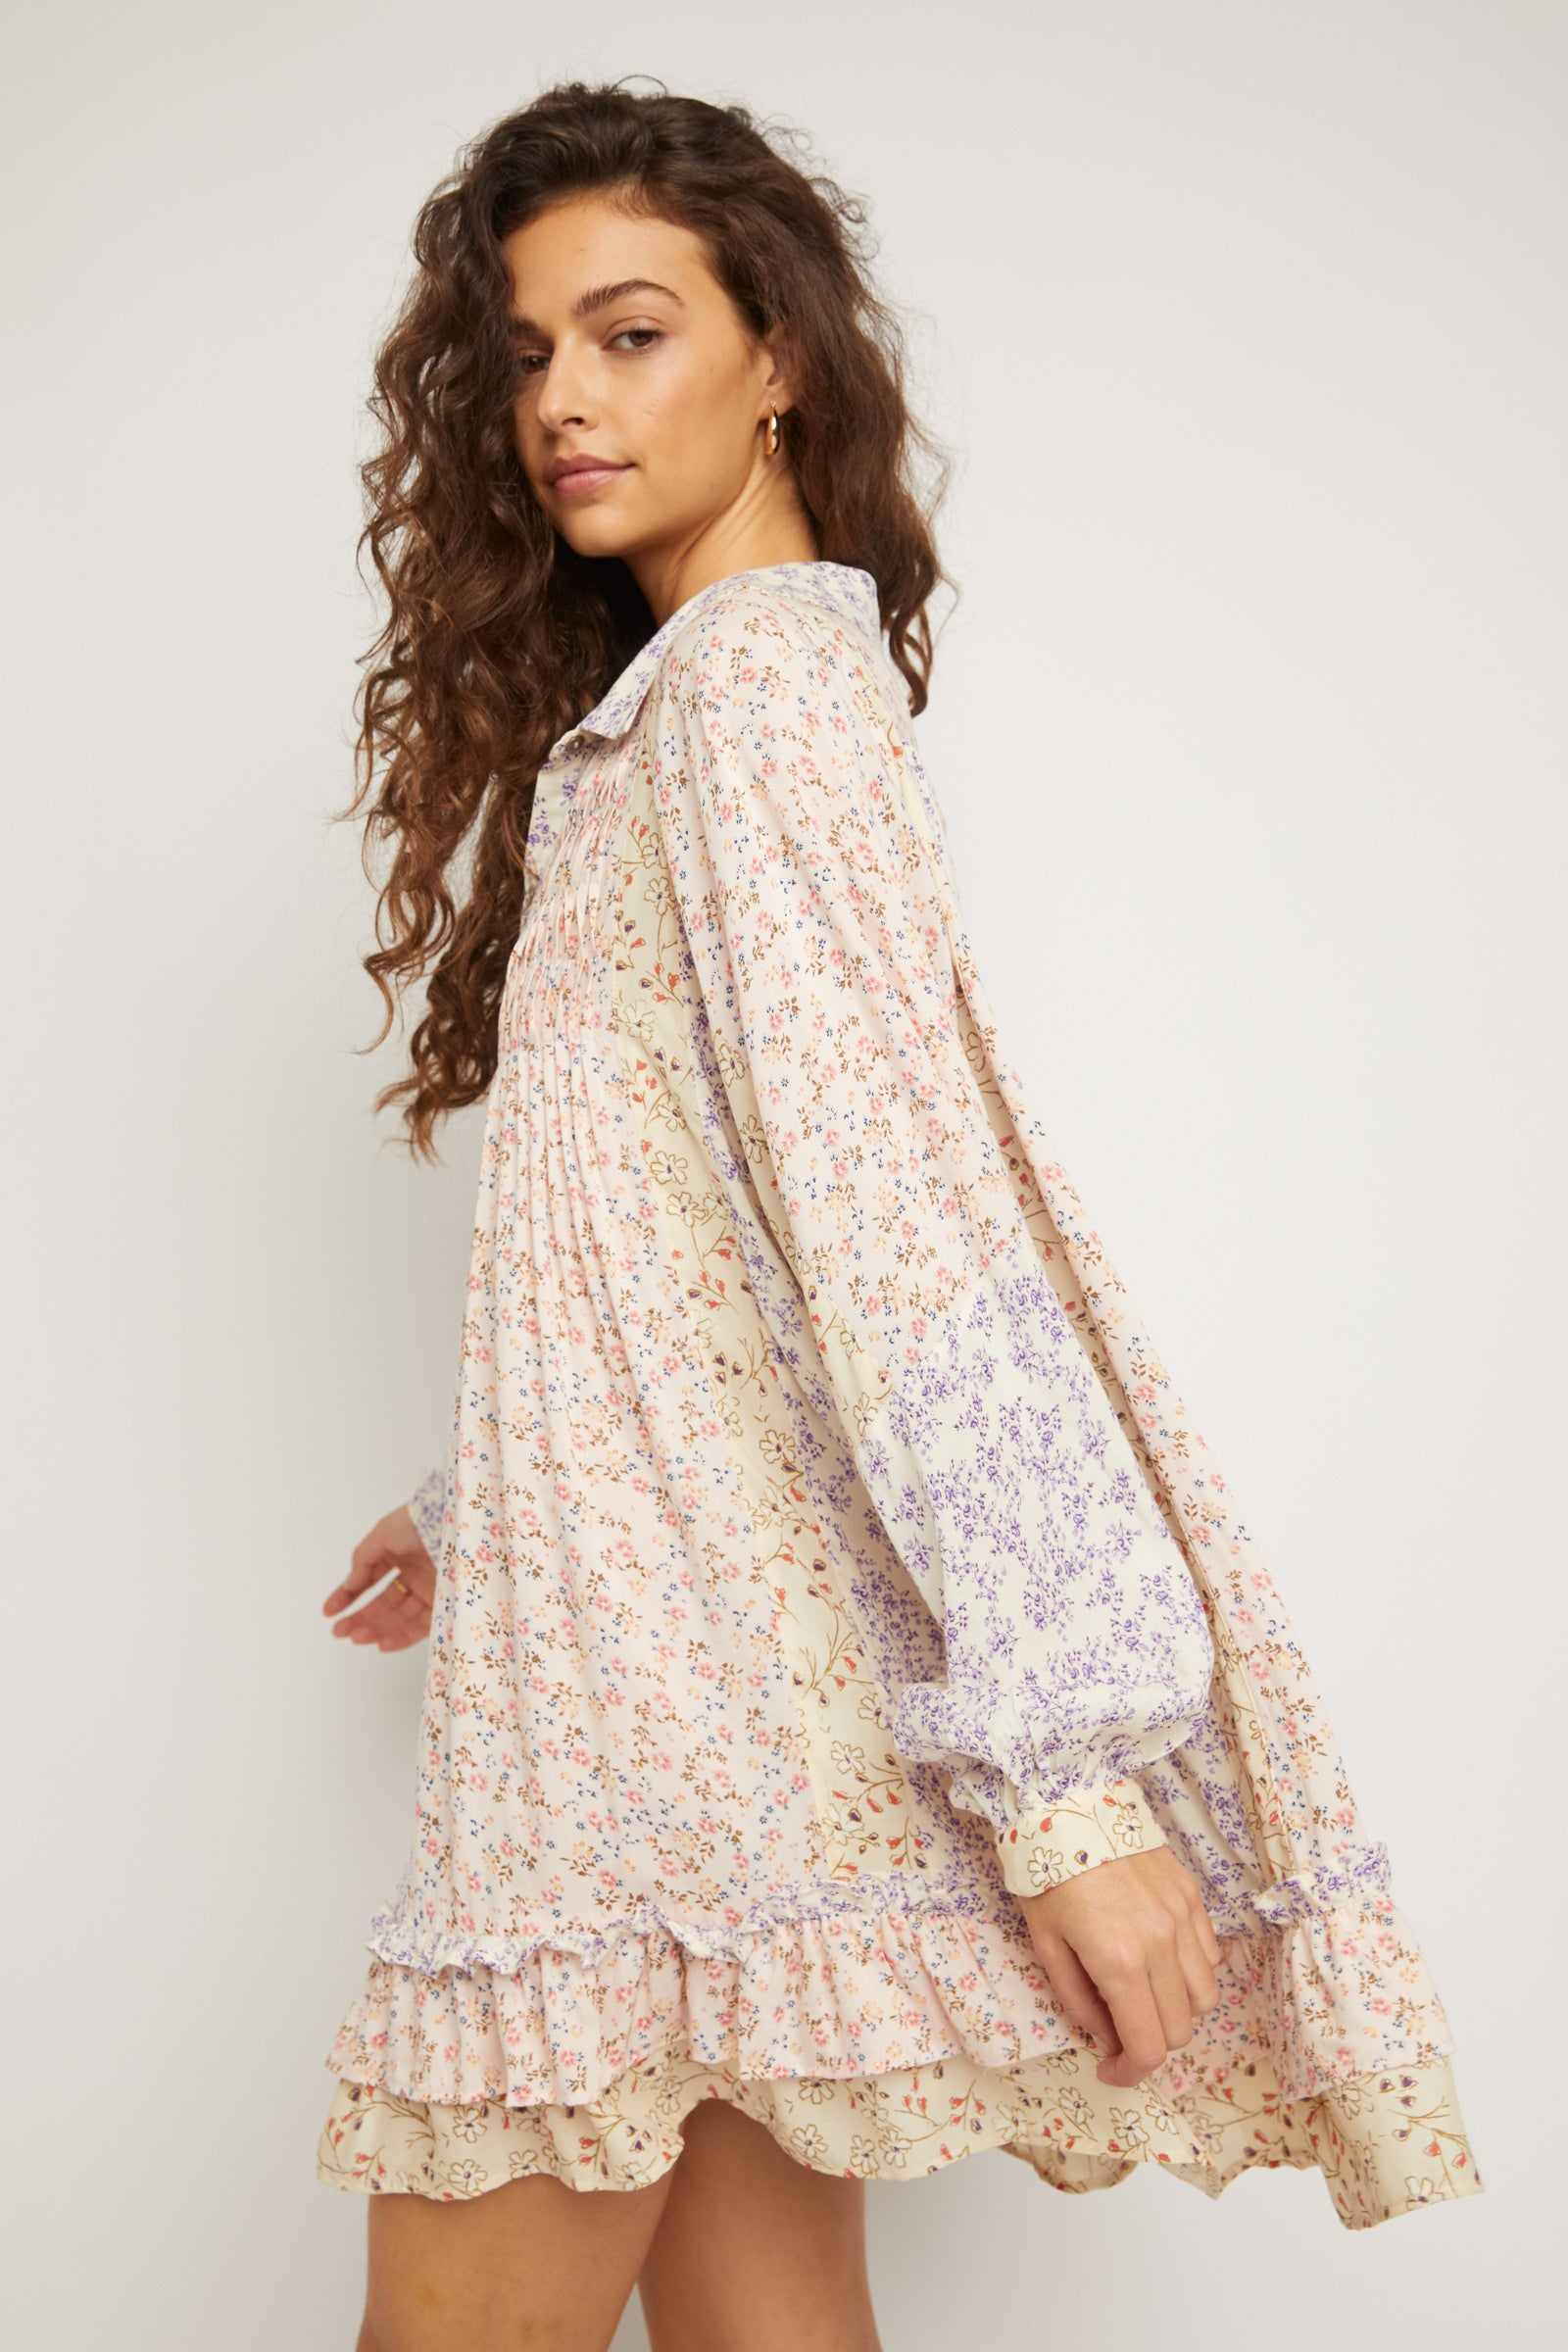 LOST IN YOU PRINTED TUNIC